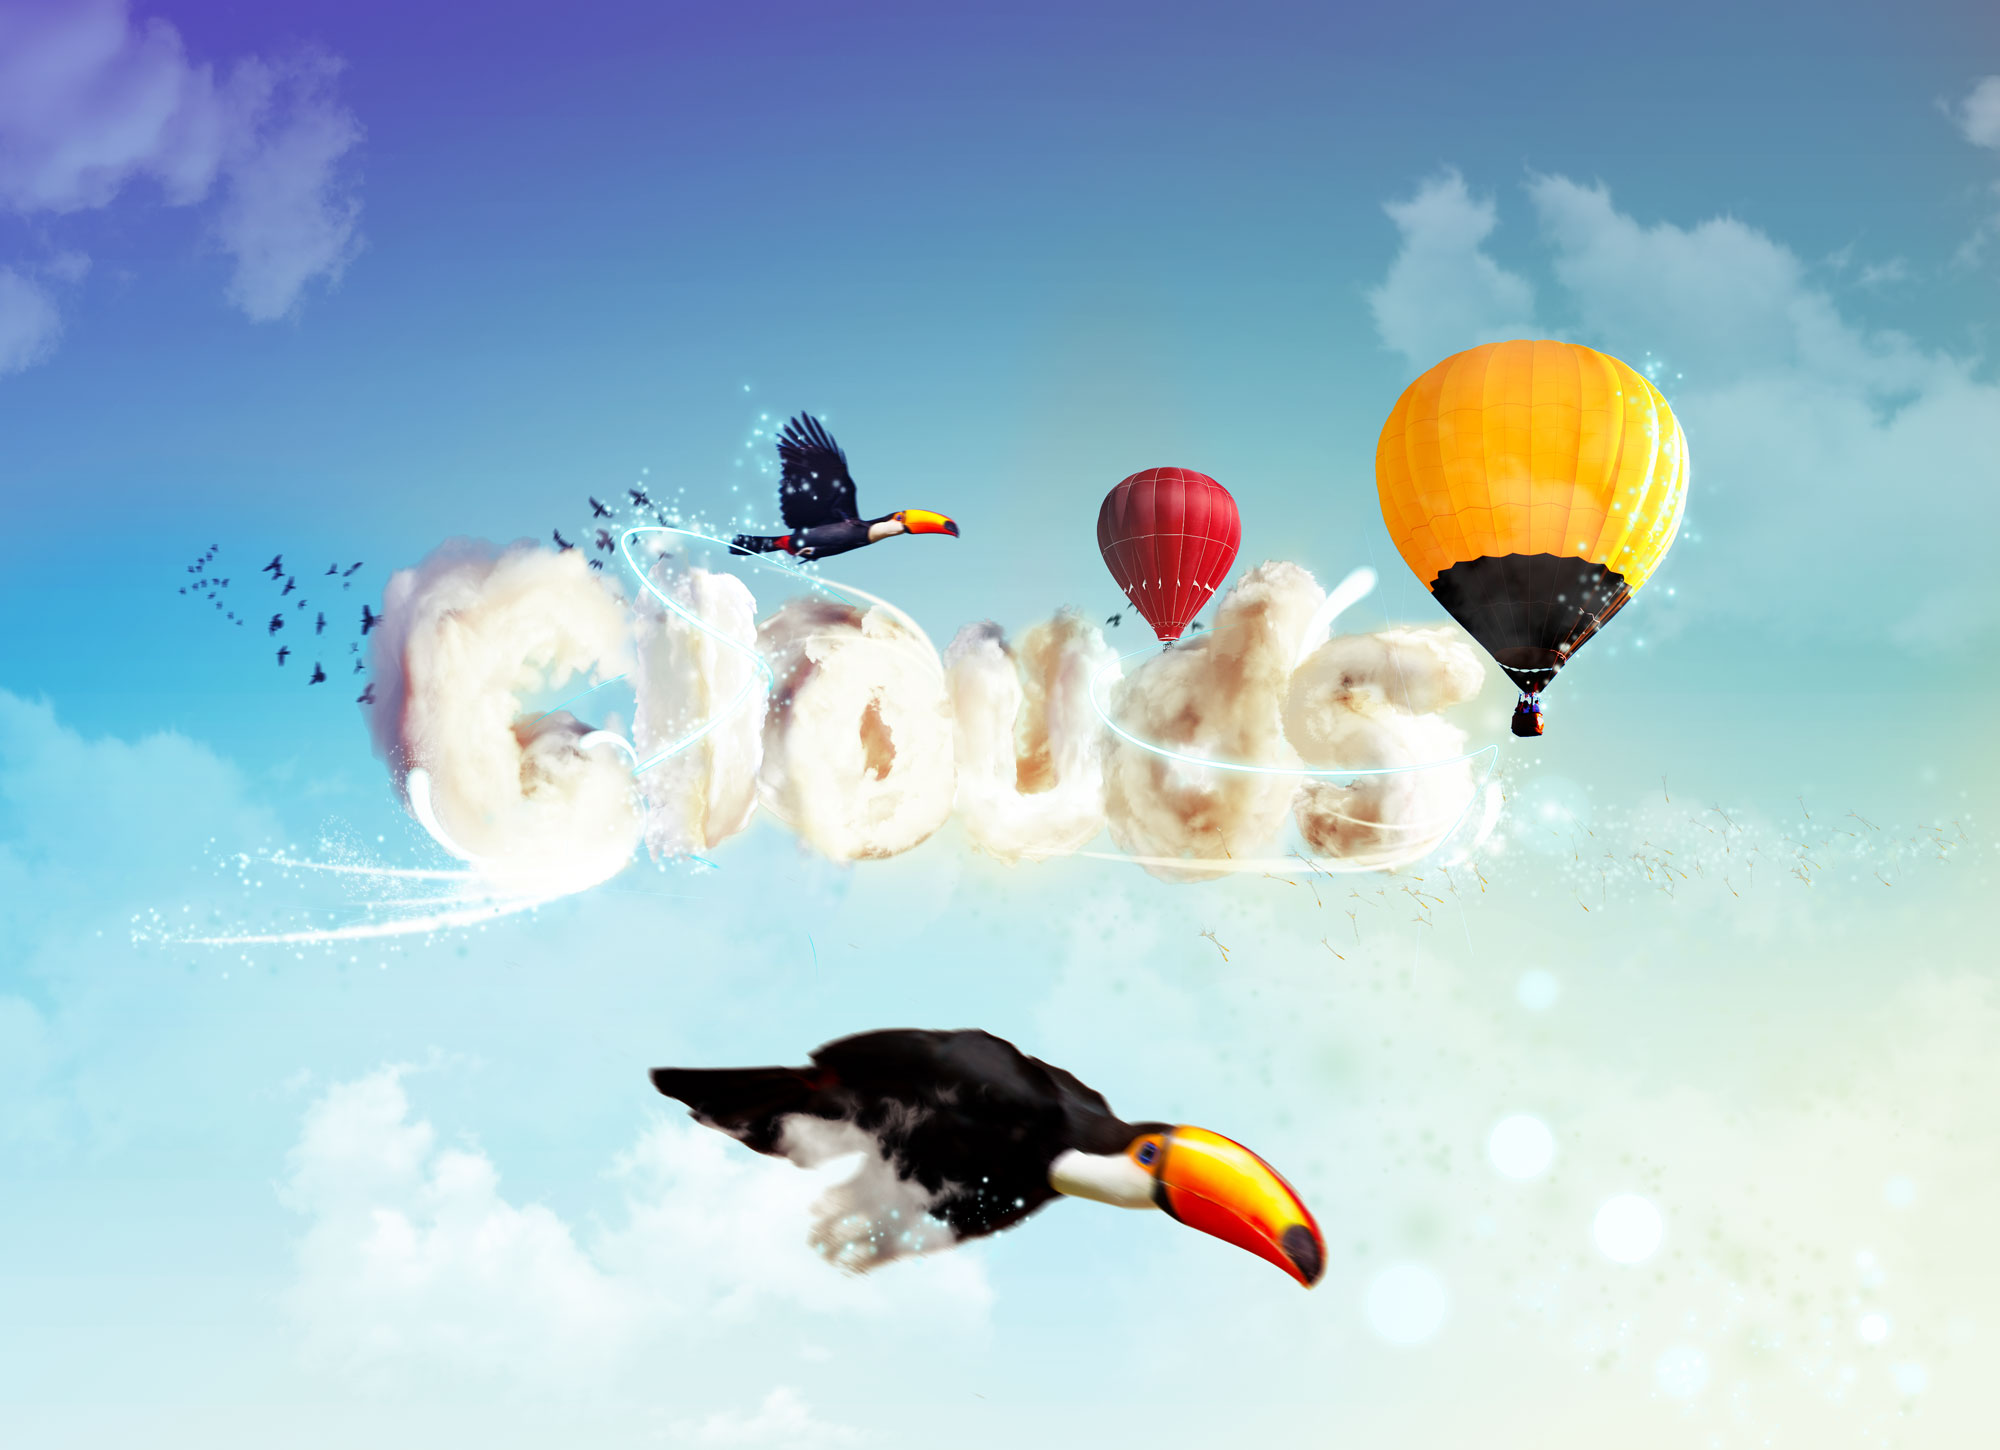 Typography with clouds